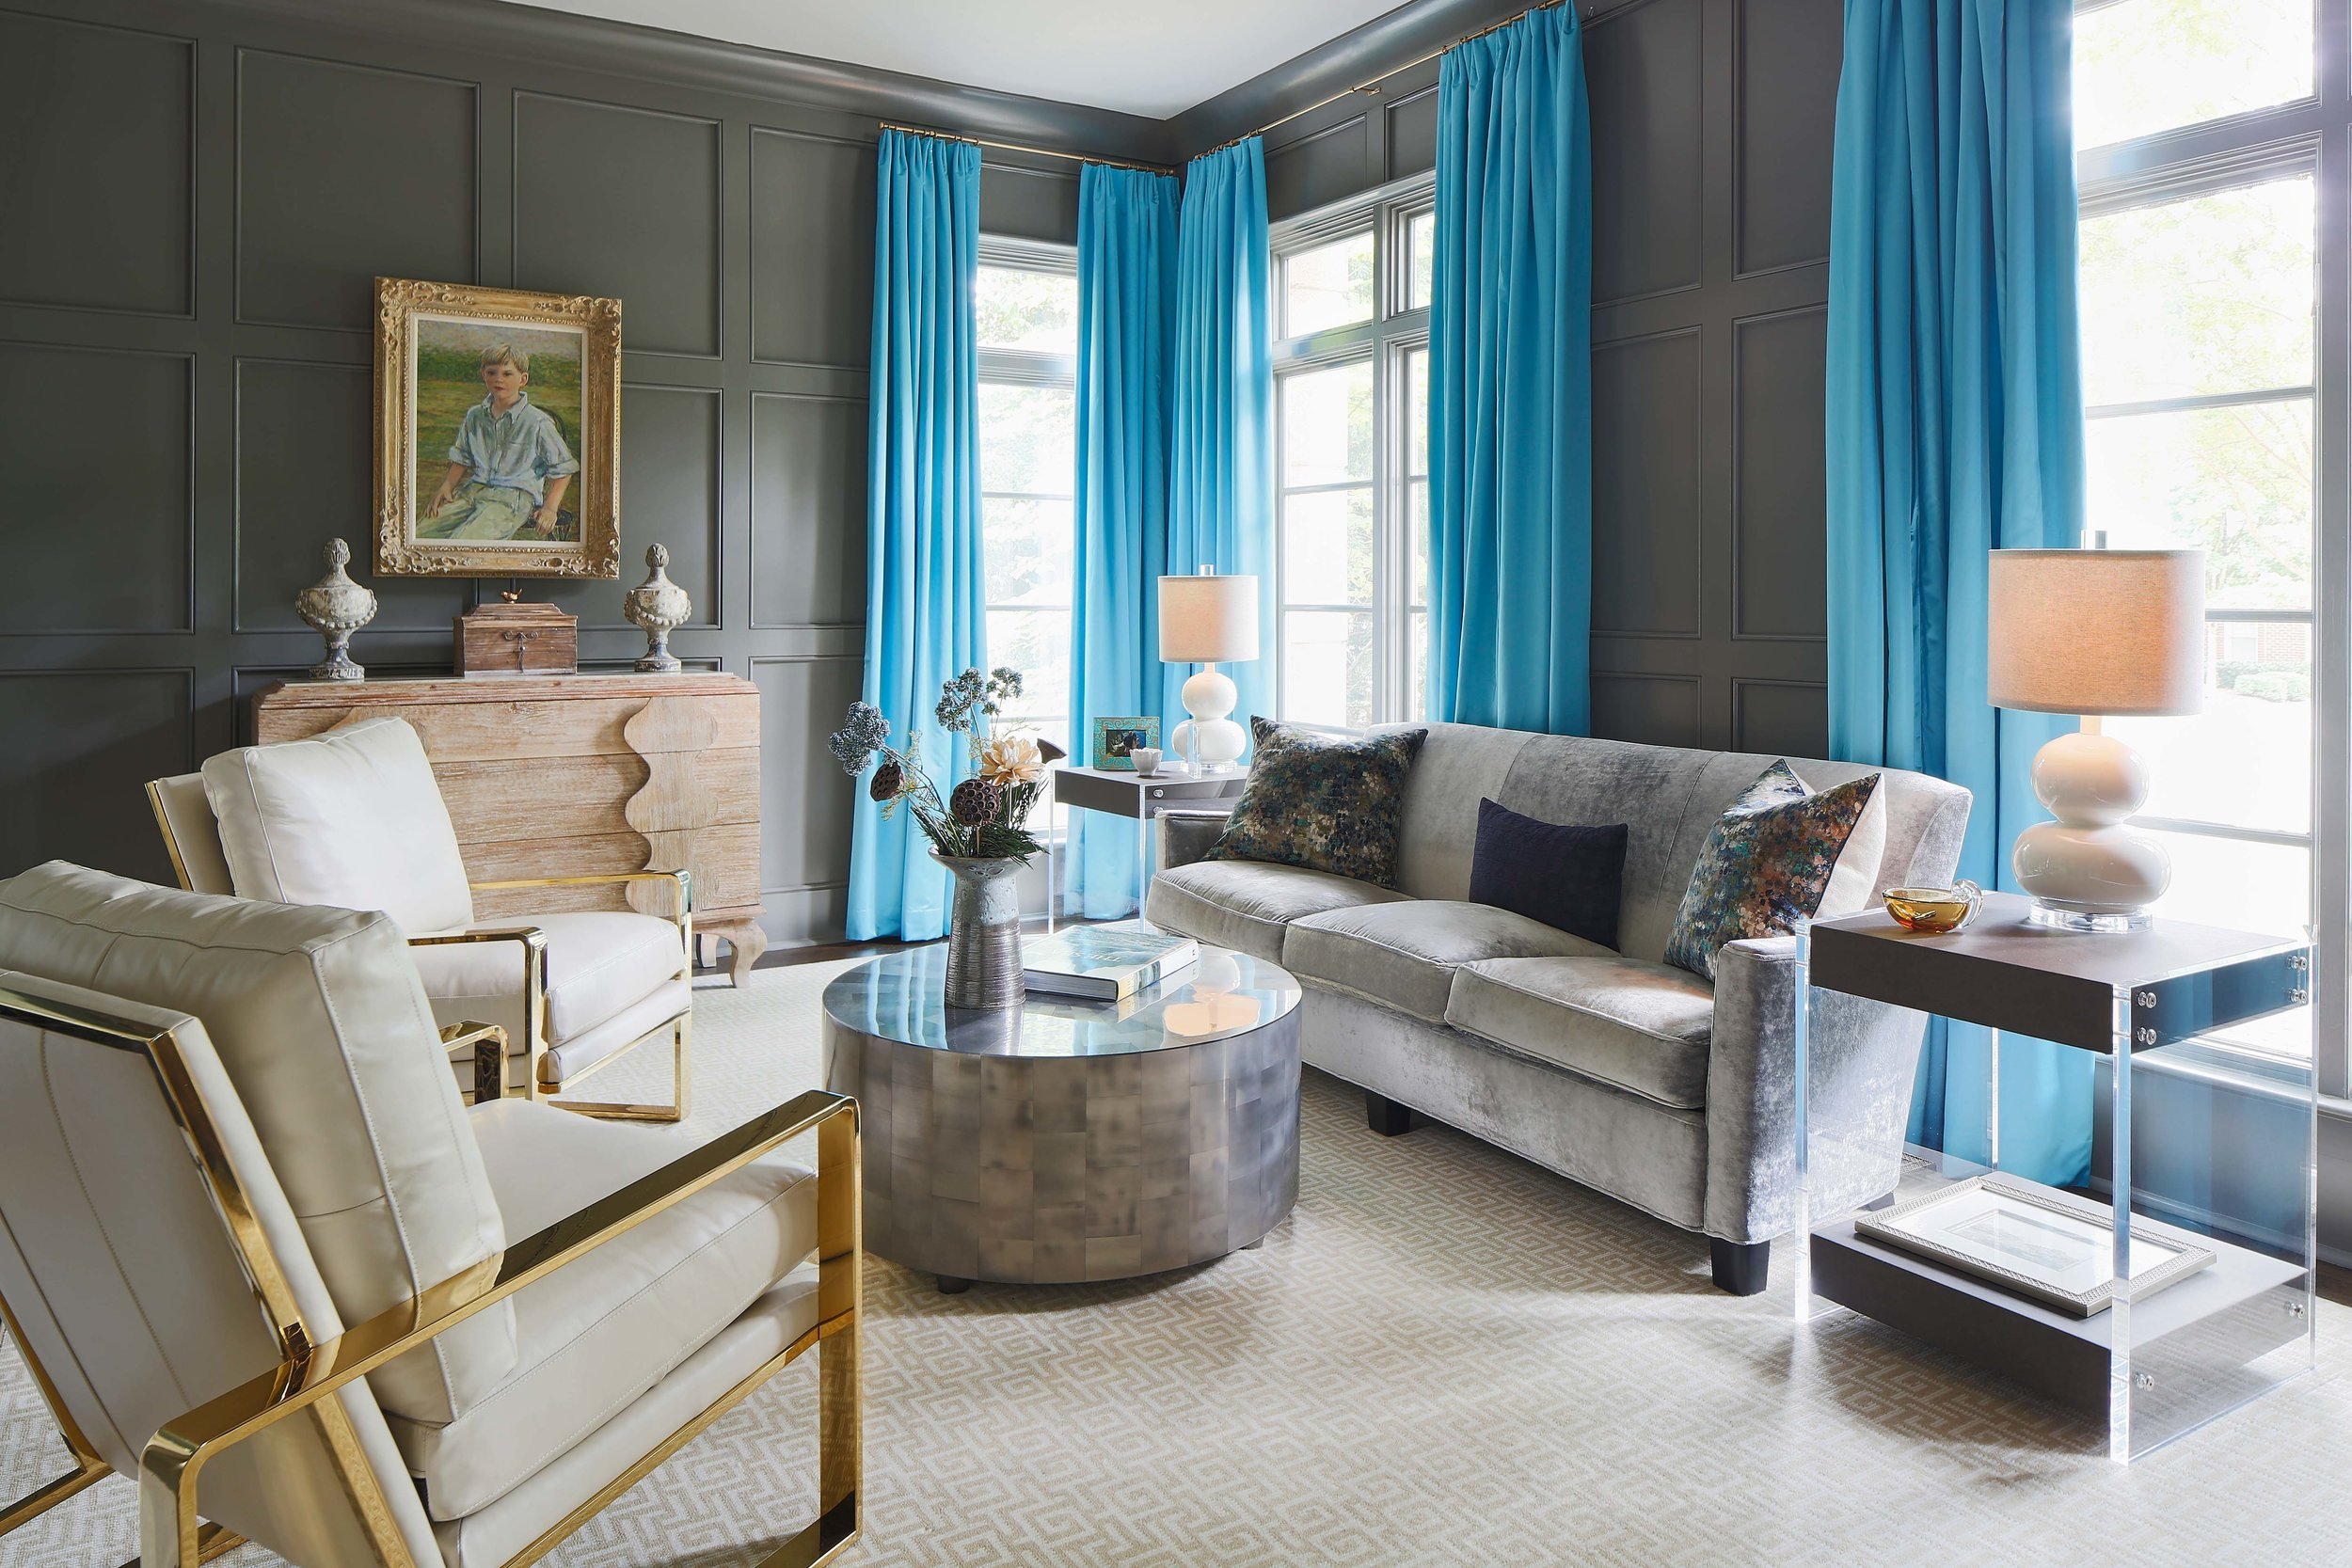 Renovation at the French Provincial